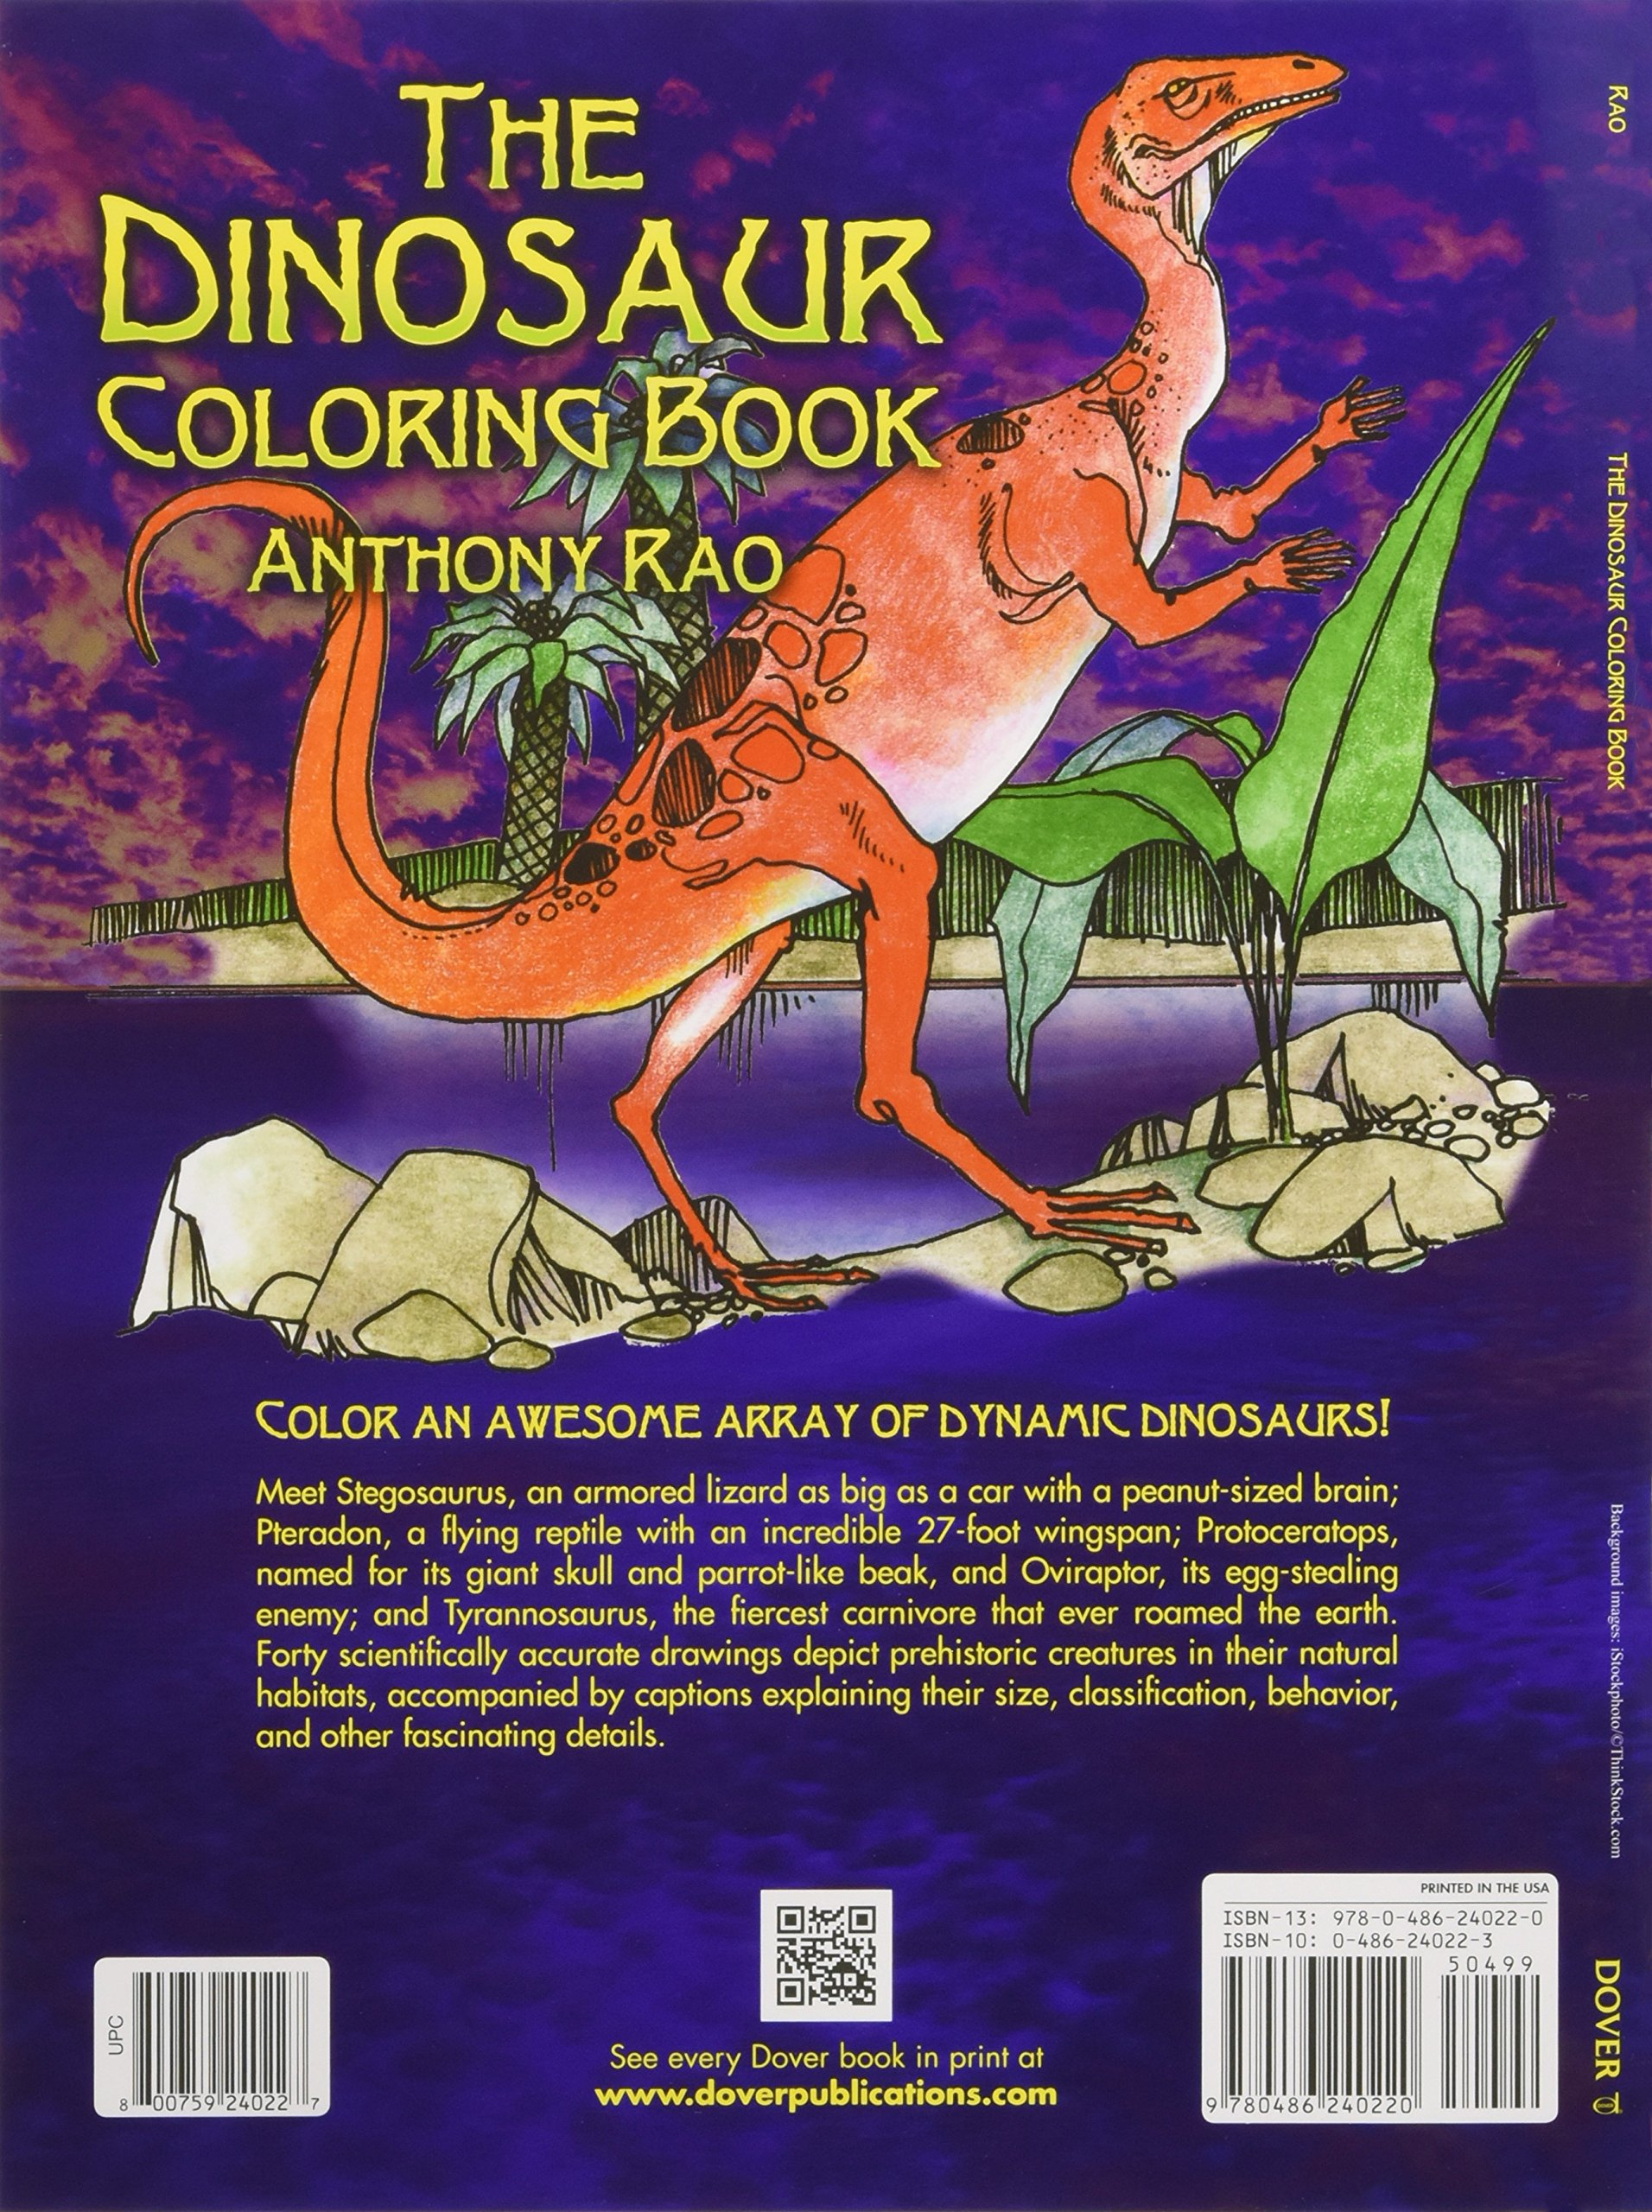 the dinosaur coloring book dover nature coloring book anthony rao 9780486240220 amazoncom books - Dinosaur Coloring Books